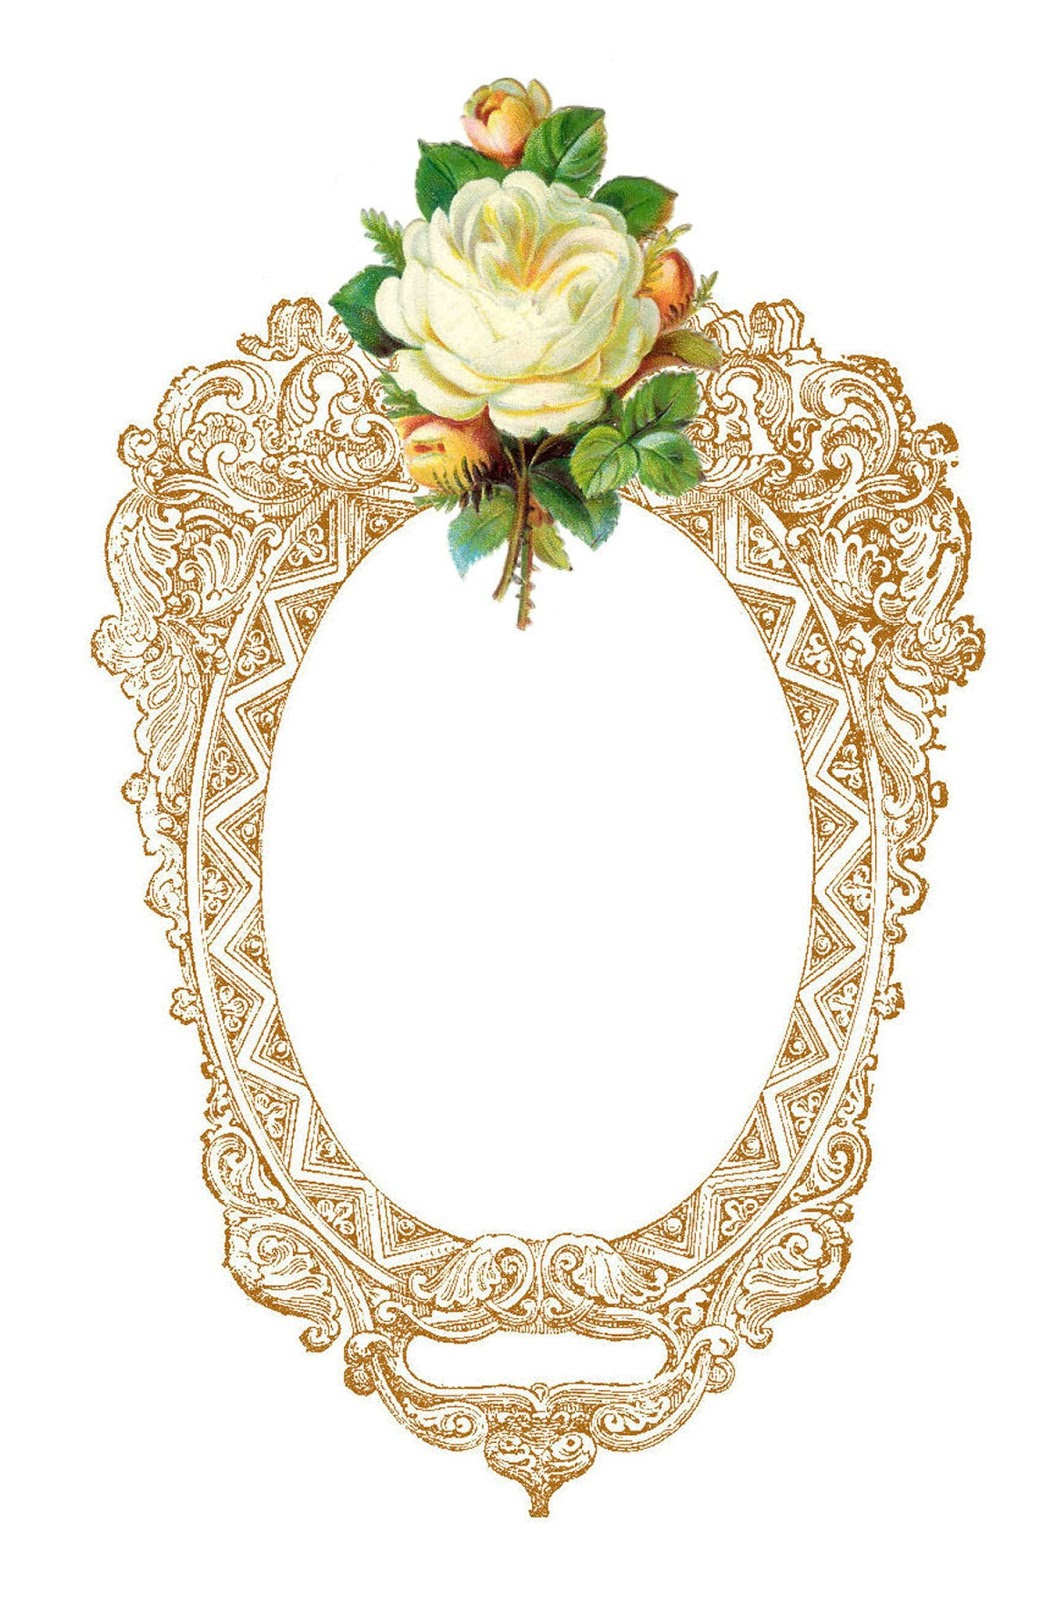 White Rose clipart graphic Images: Clip Art: Antique with